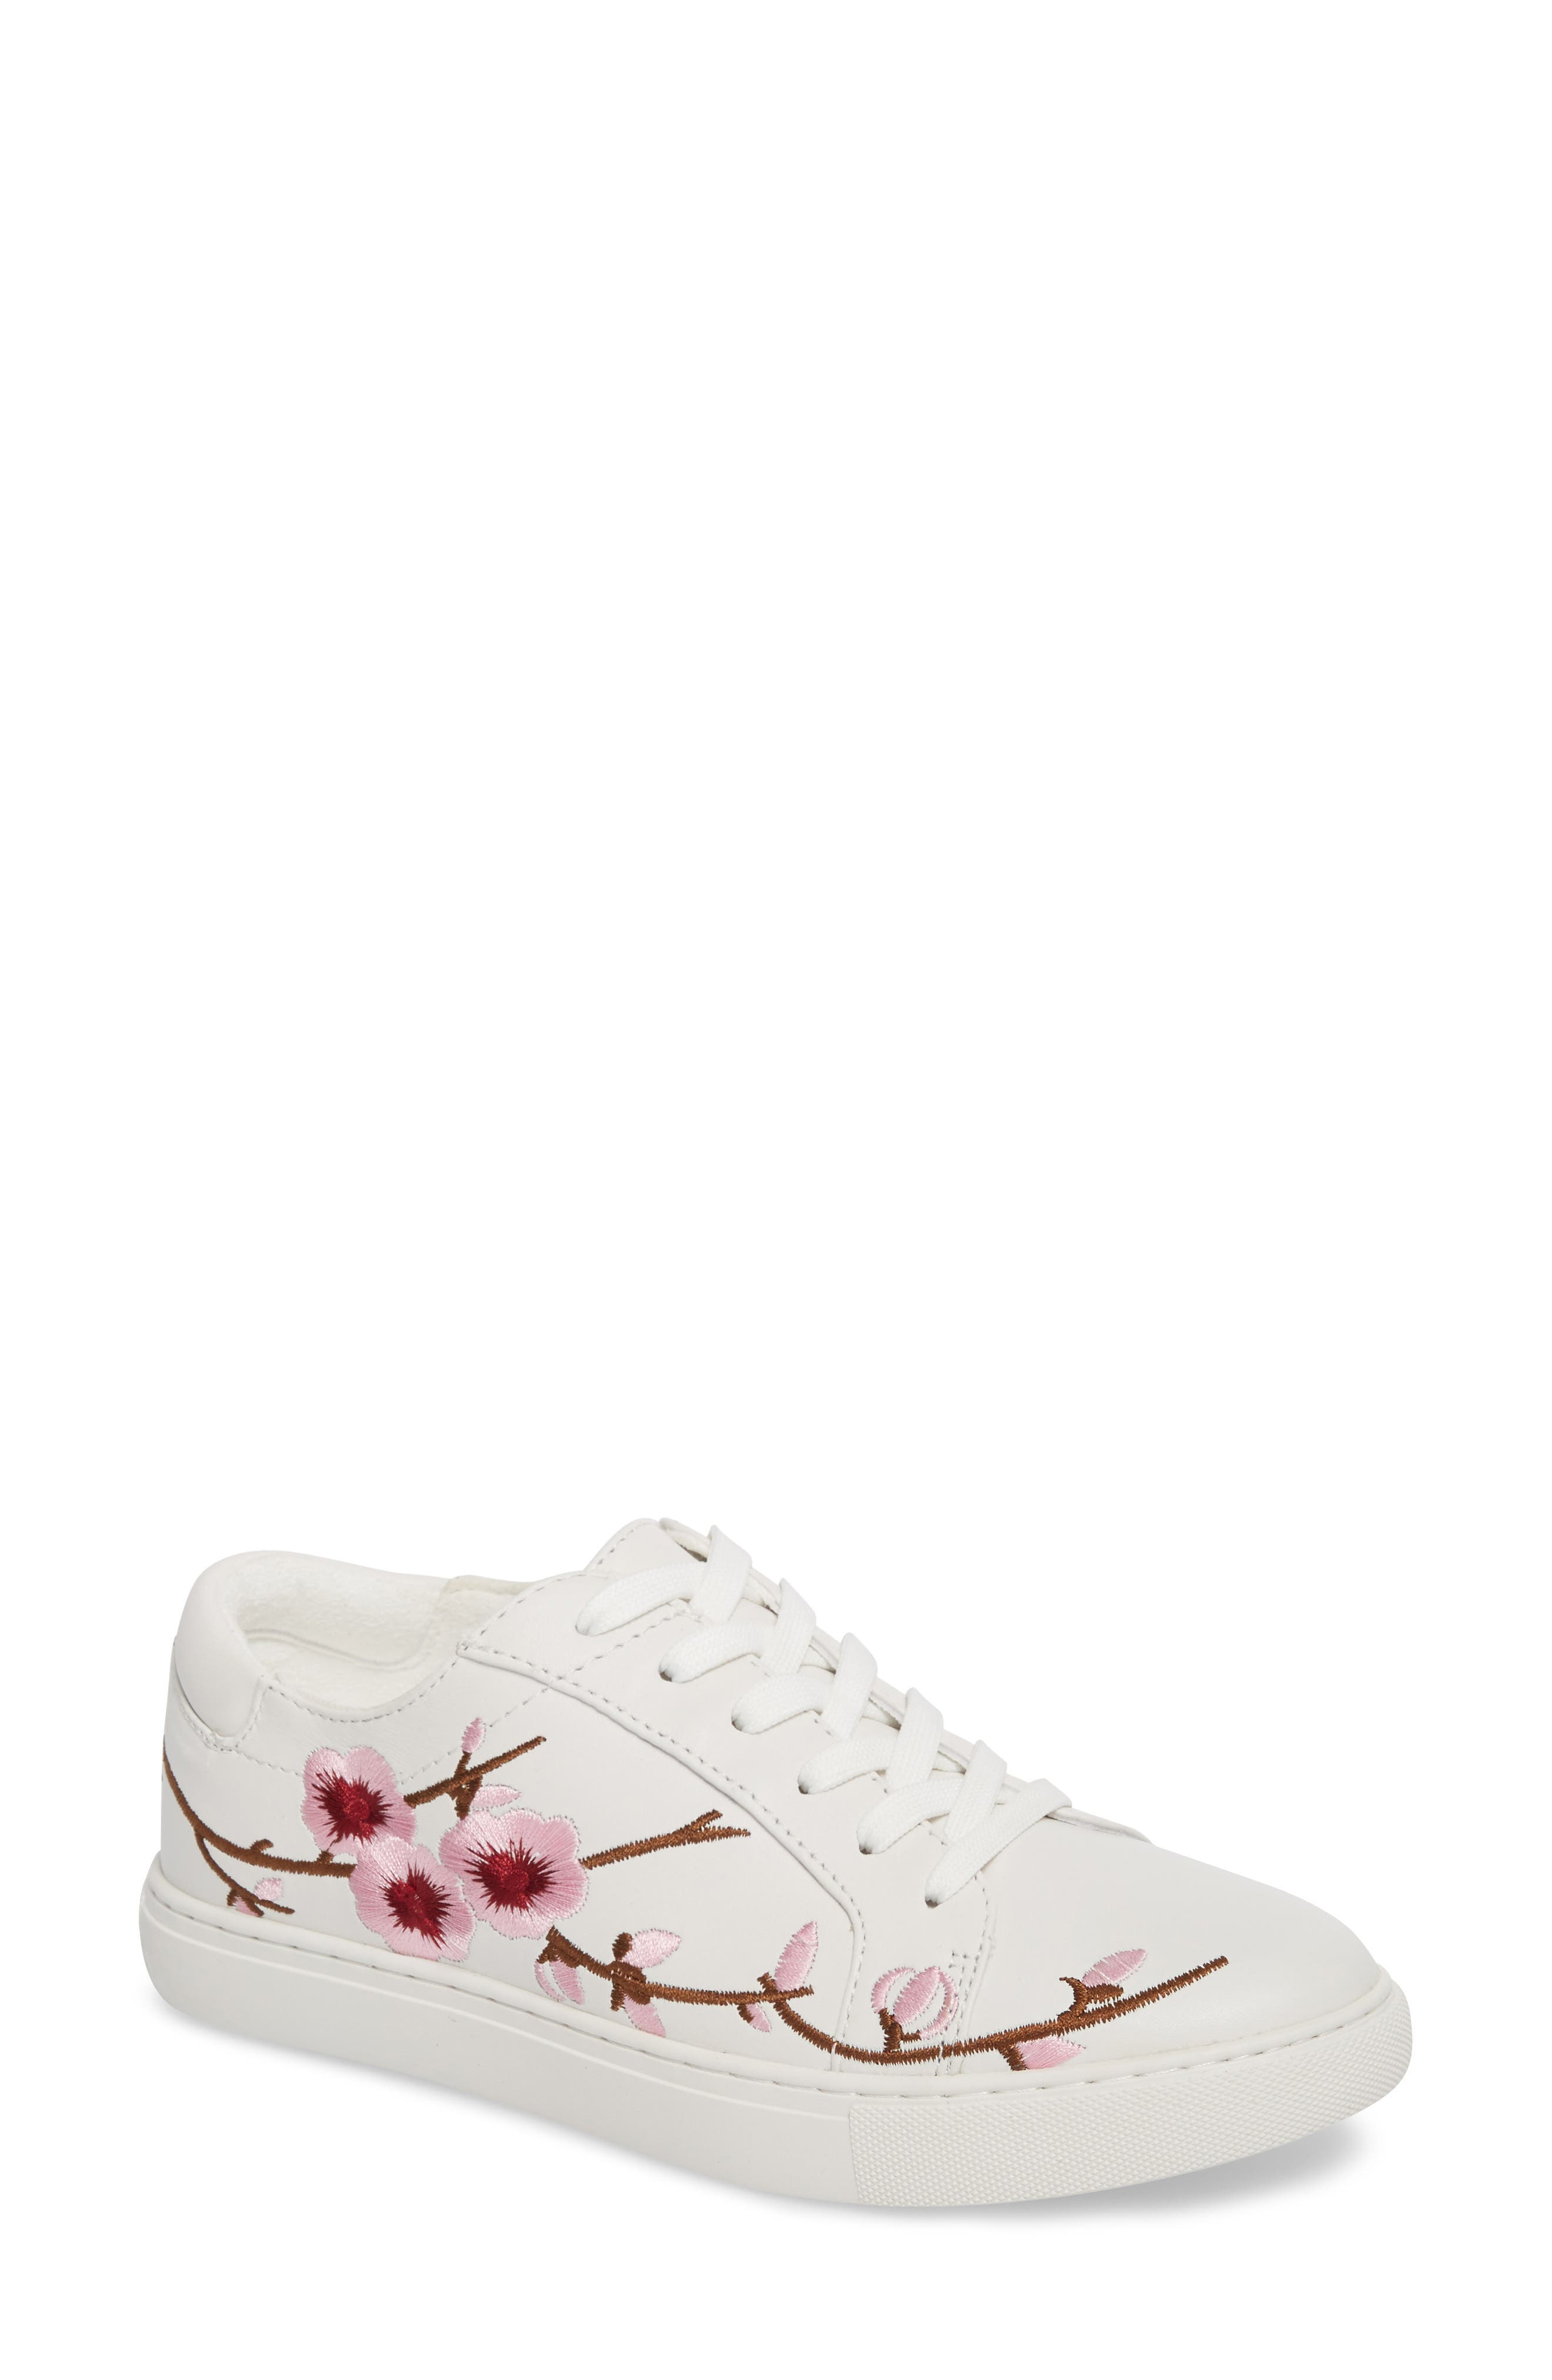 Kam Blossom Embroidered Sneaker,                         Main,                         color, White Leather